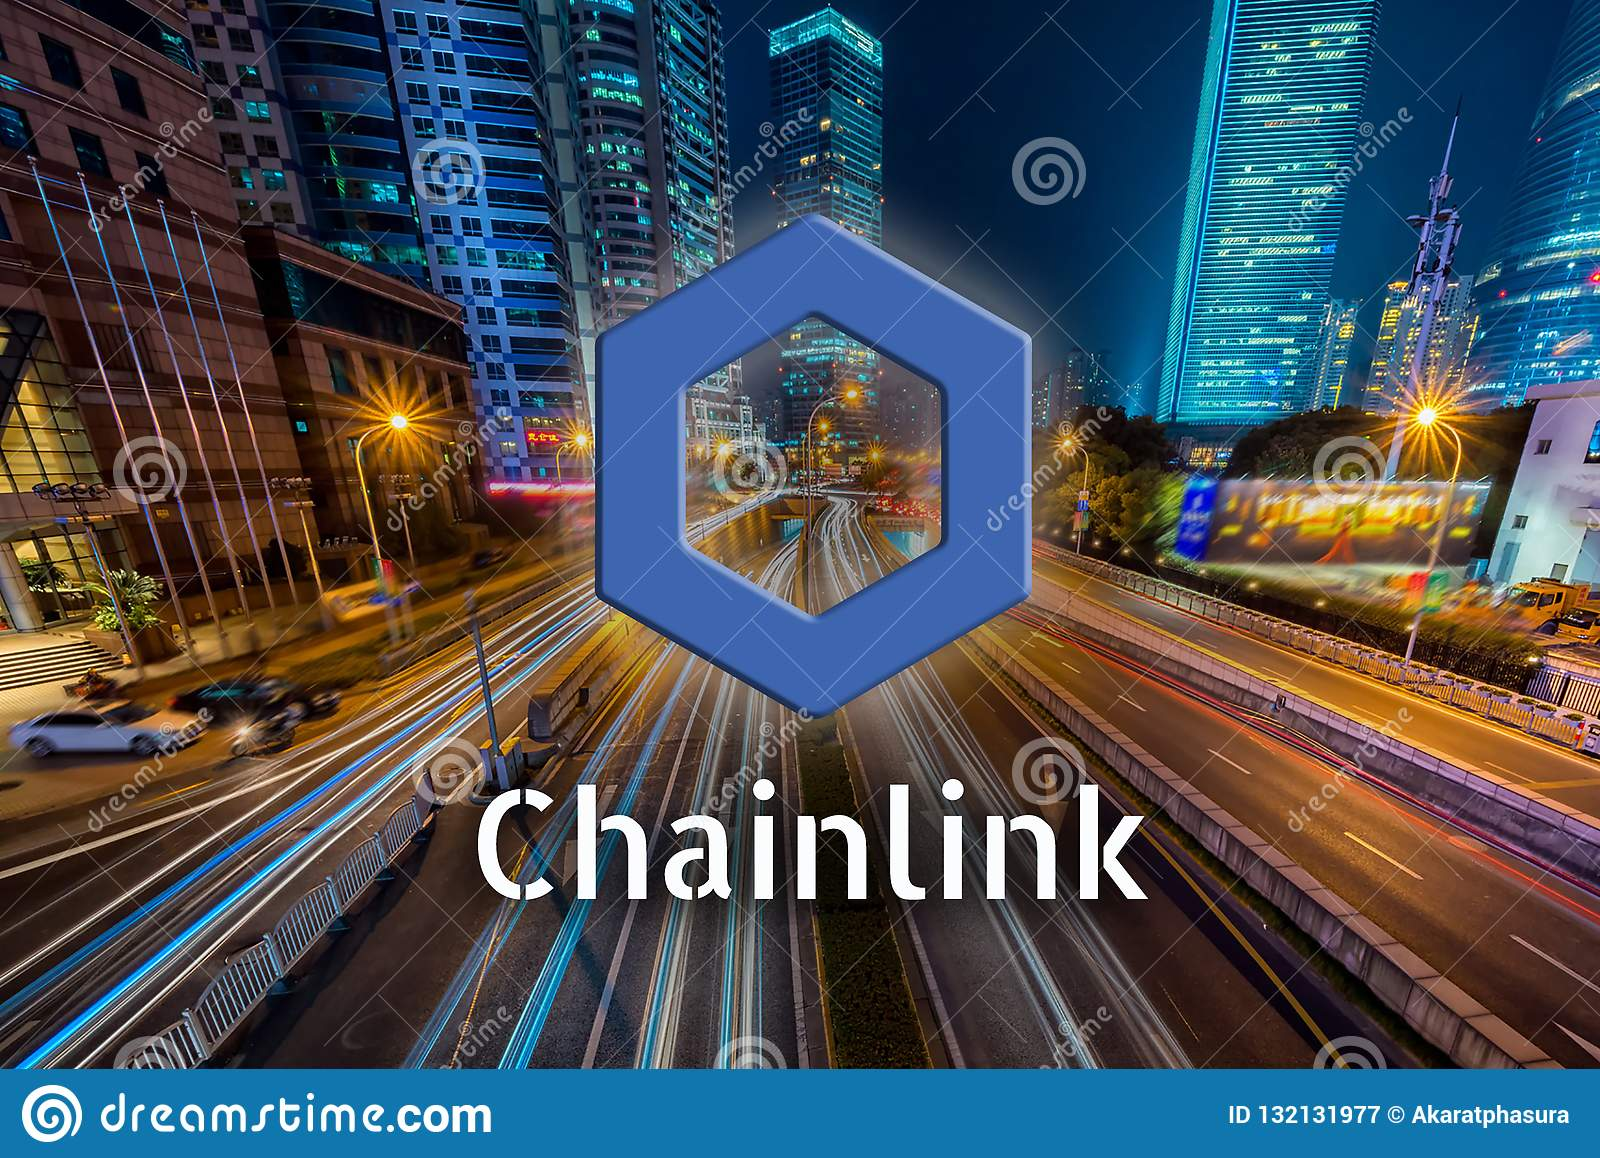 Concept Of Chainlink Coin Moving Fast On The Road, A Cryptocurrency